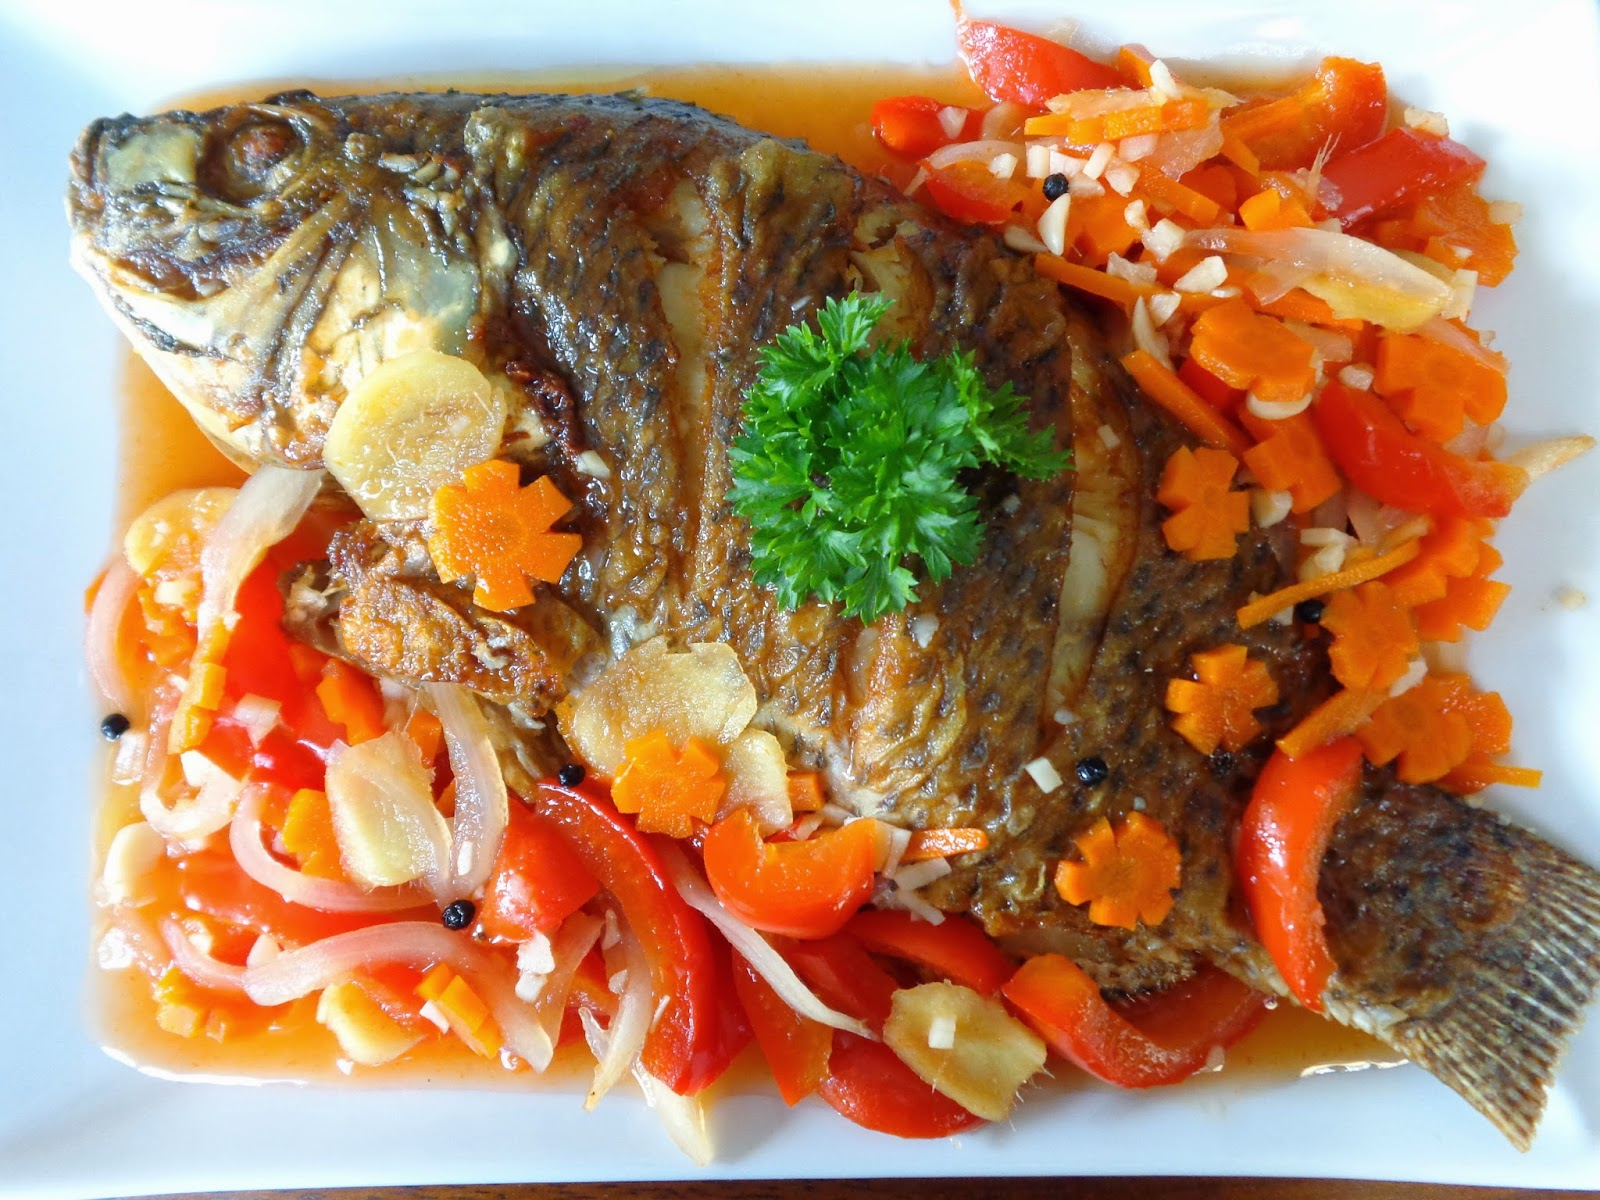 Filipino food aficionado escabeche sweet and sour fish for Fish escabeche recipe